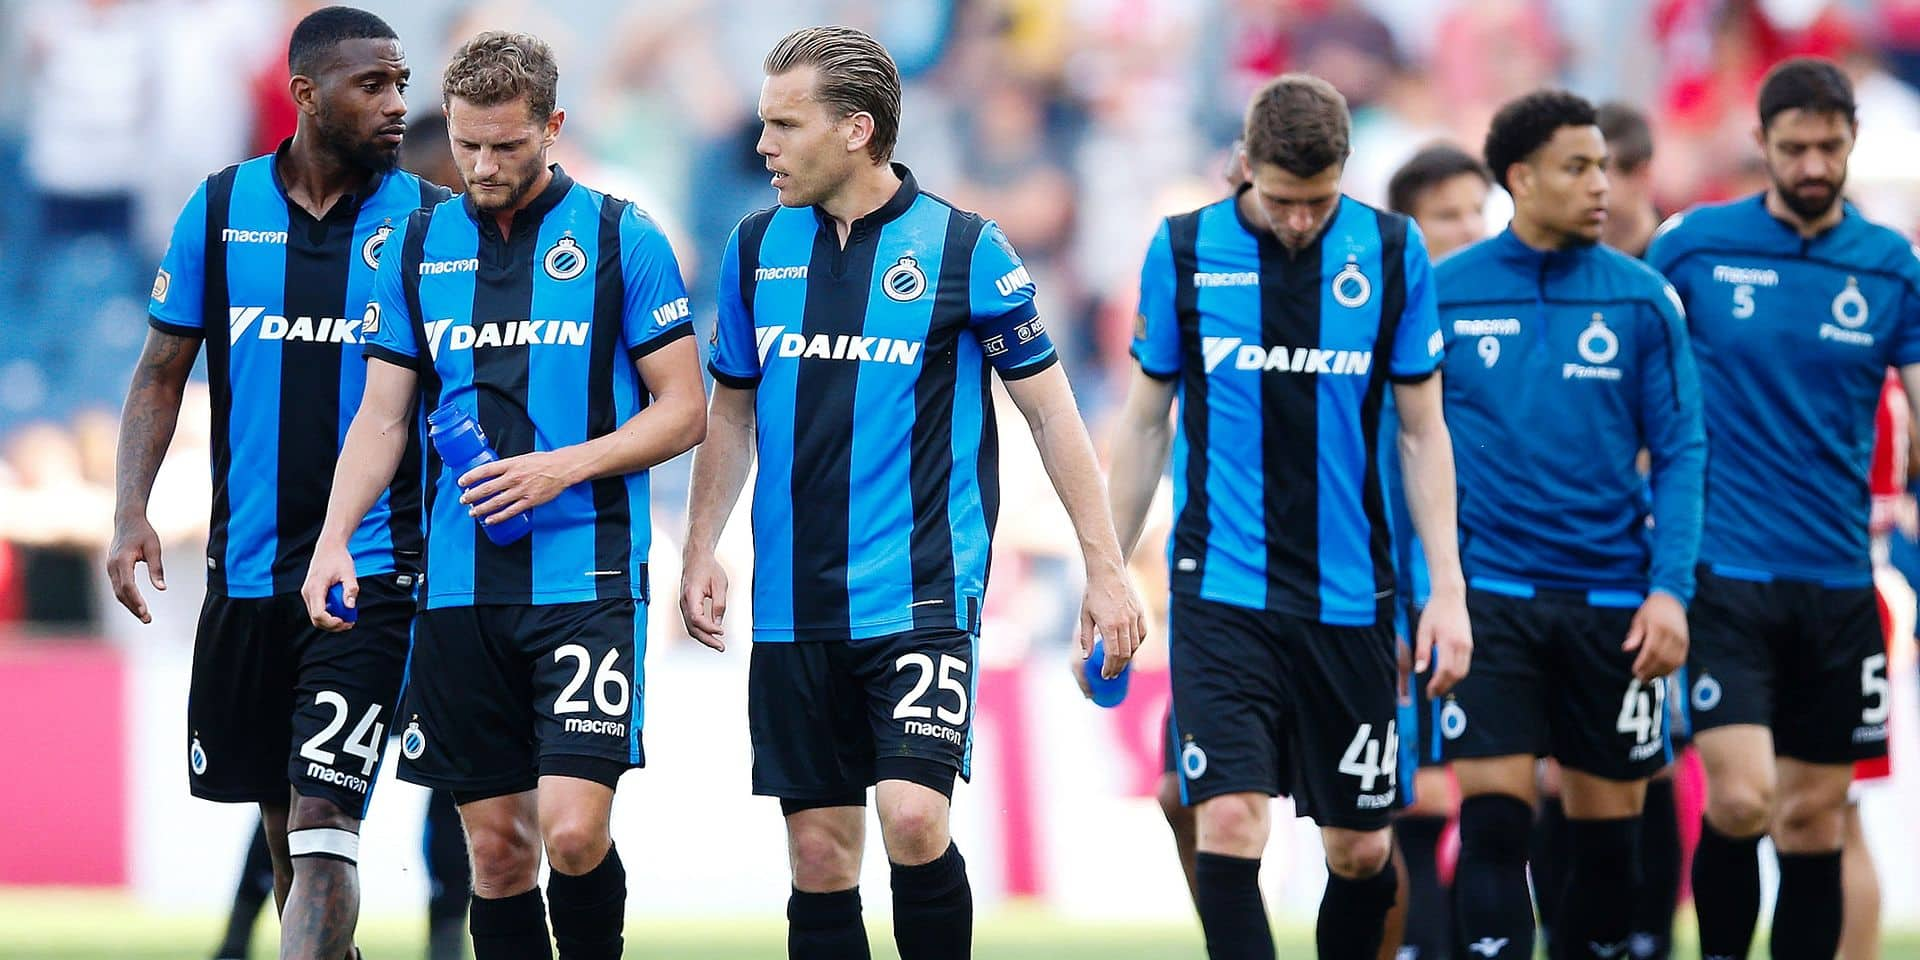 Club's players look dejected after a soccer match between Royal Antwerp FC and Club Brugge, Monday 22 April 2019 in Antwerp, on day 5 (out of 10) of the Play-off 1 of the 'Jupiler Pro League' Belgian soccer championship. BELGA PHOTO BRUNO FAHY